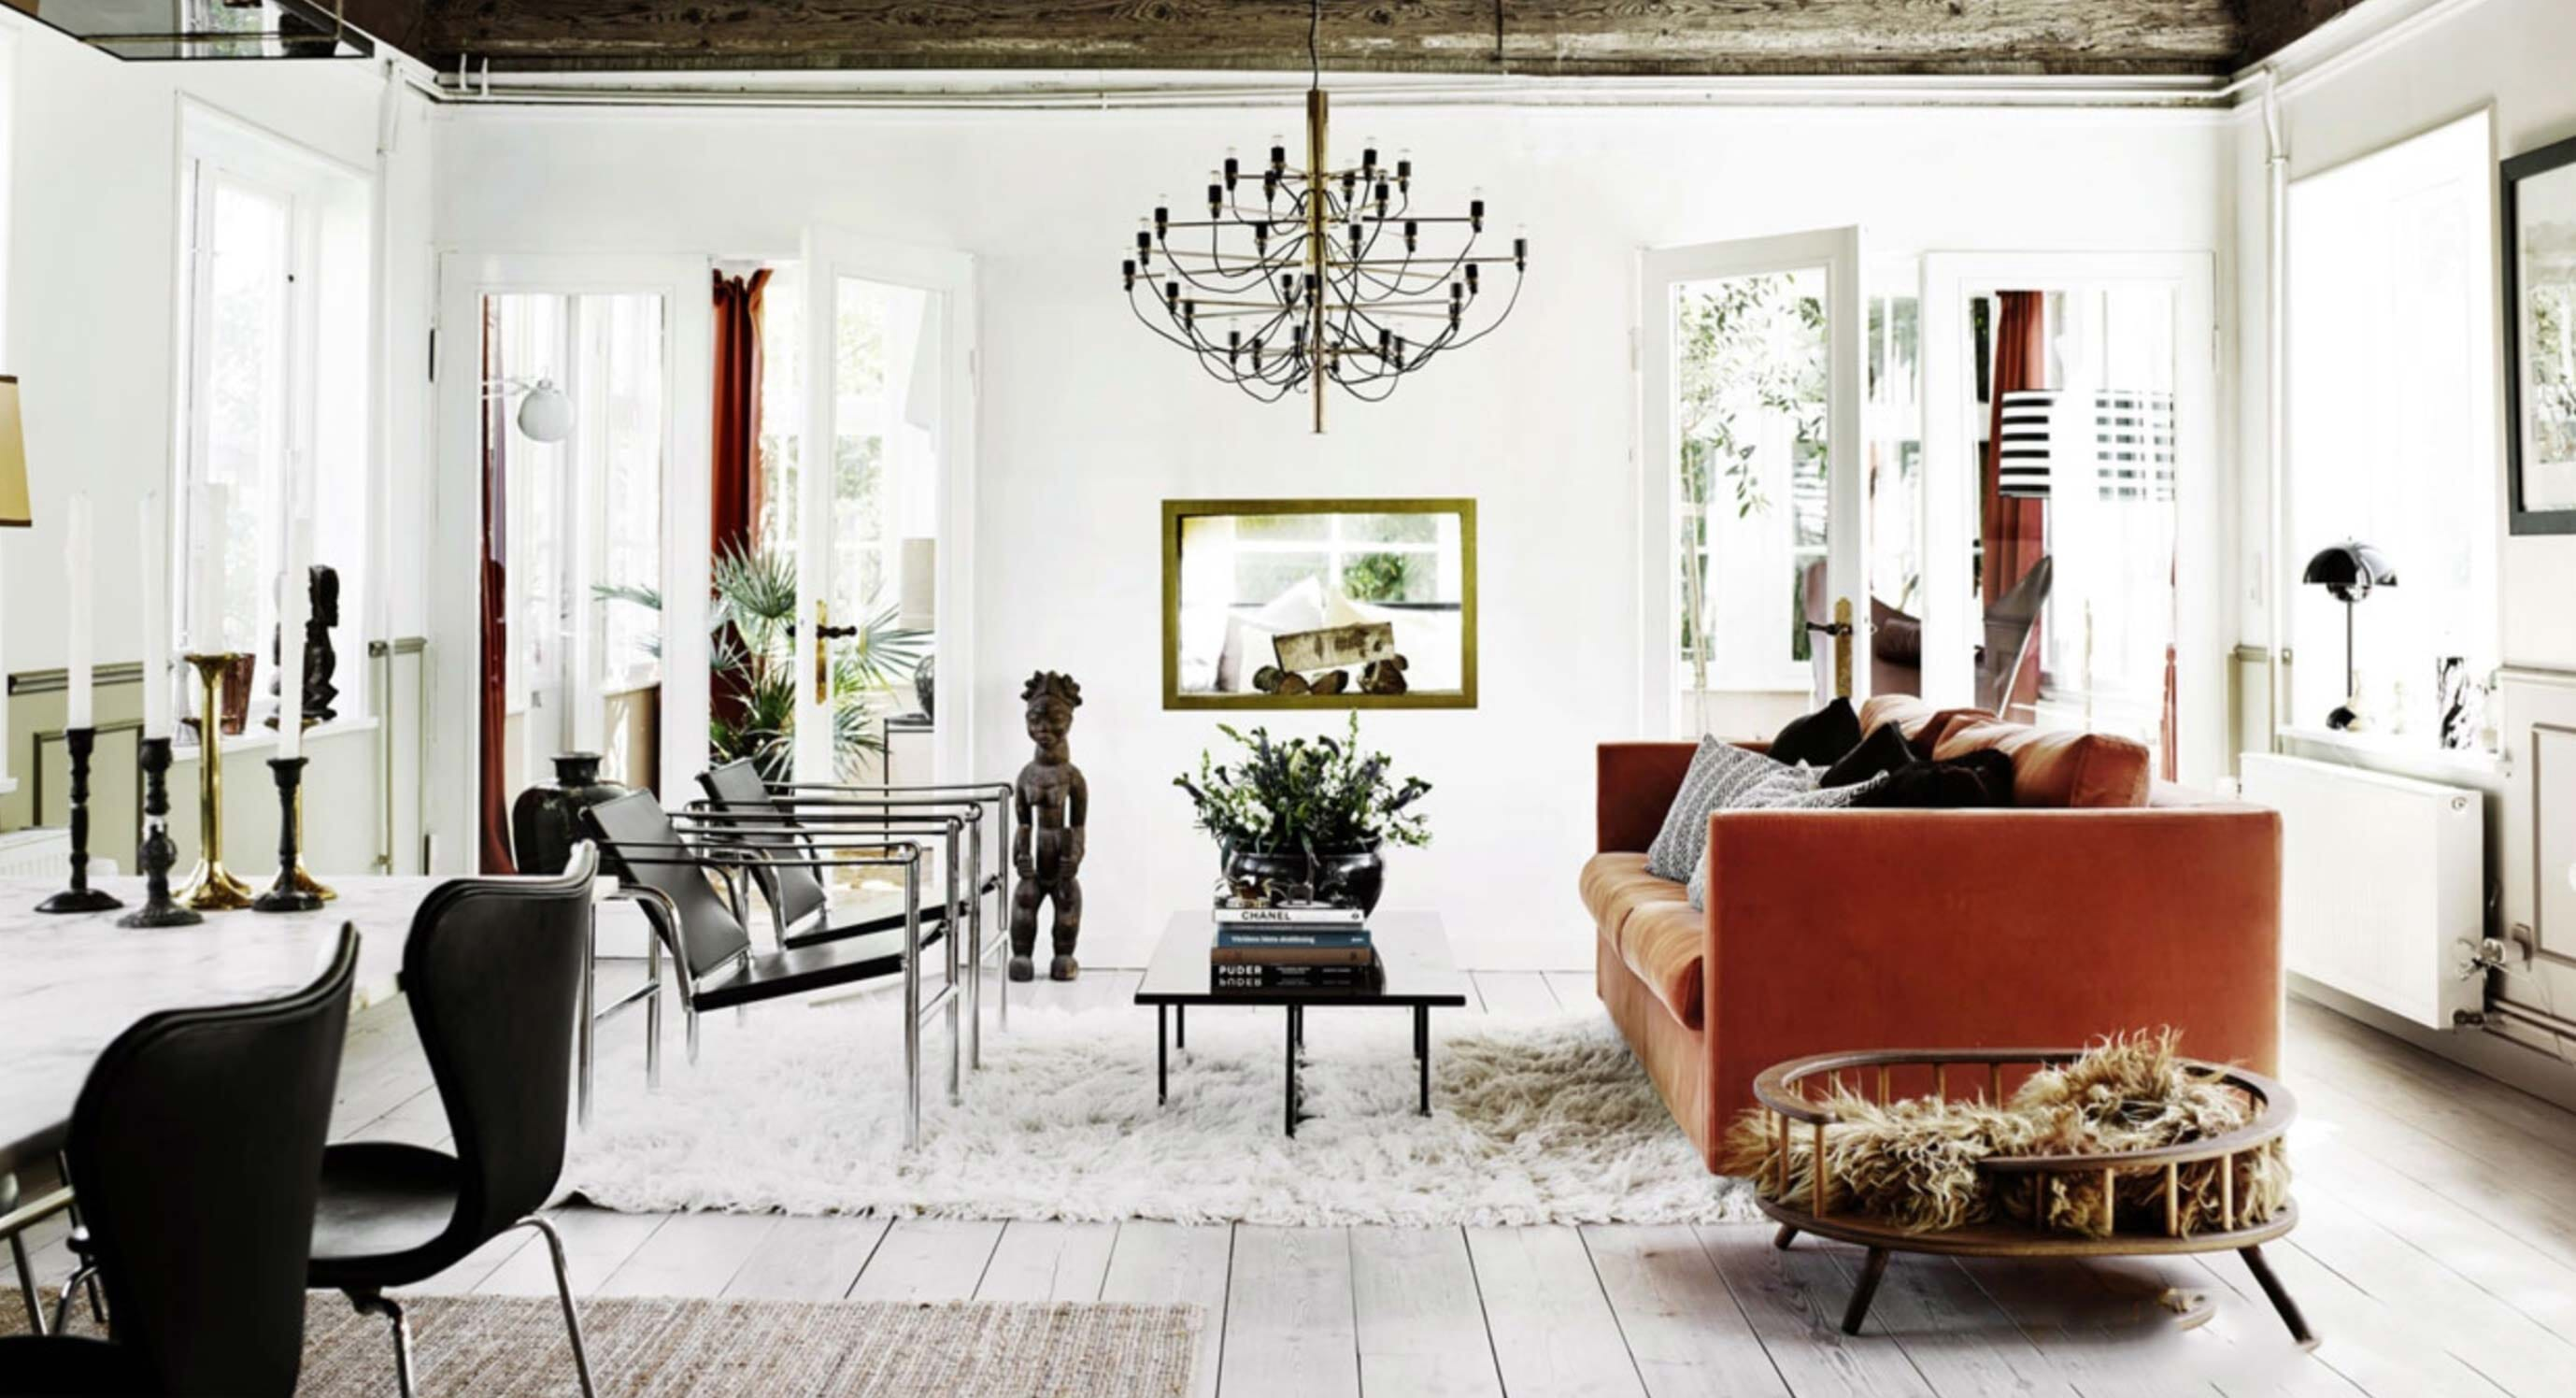 This Rustic Beach Cottage in Denmark Could Be Yours